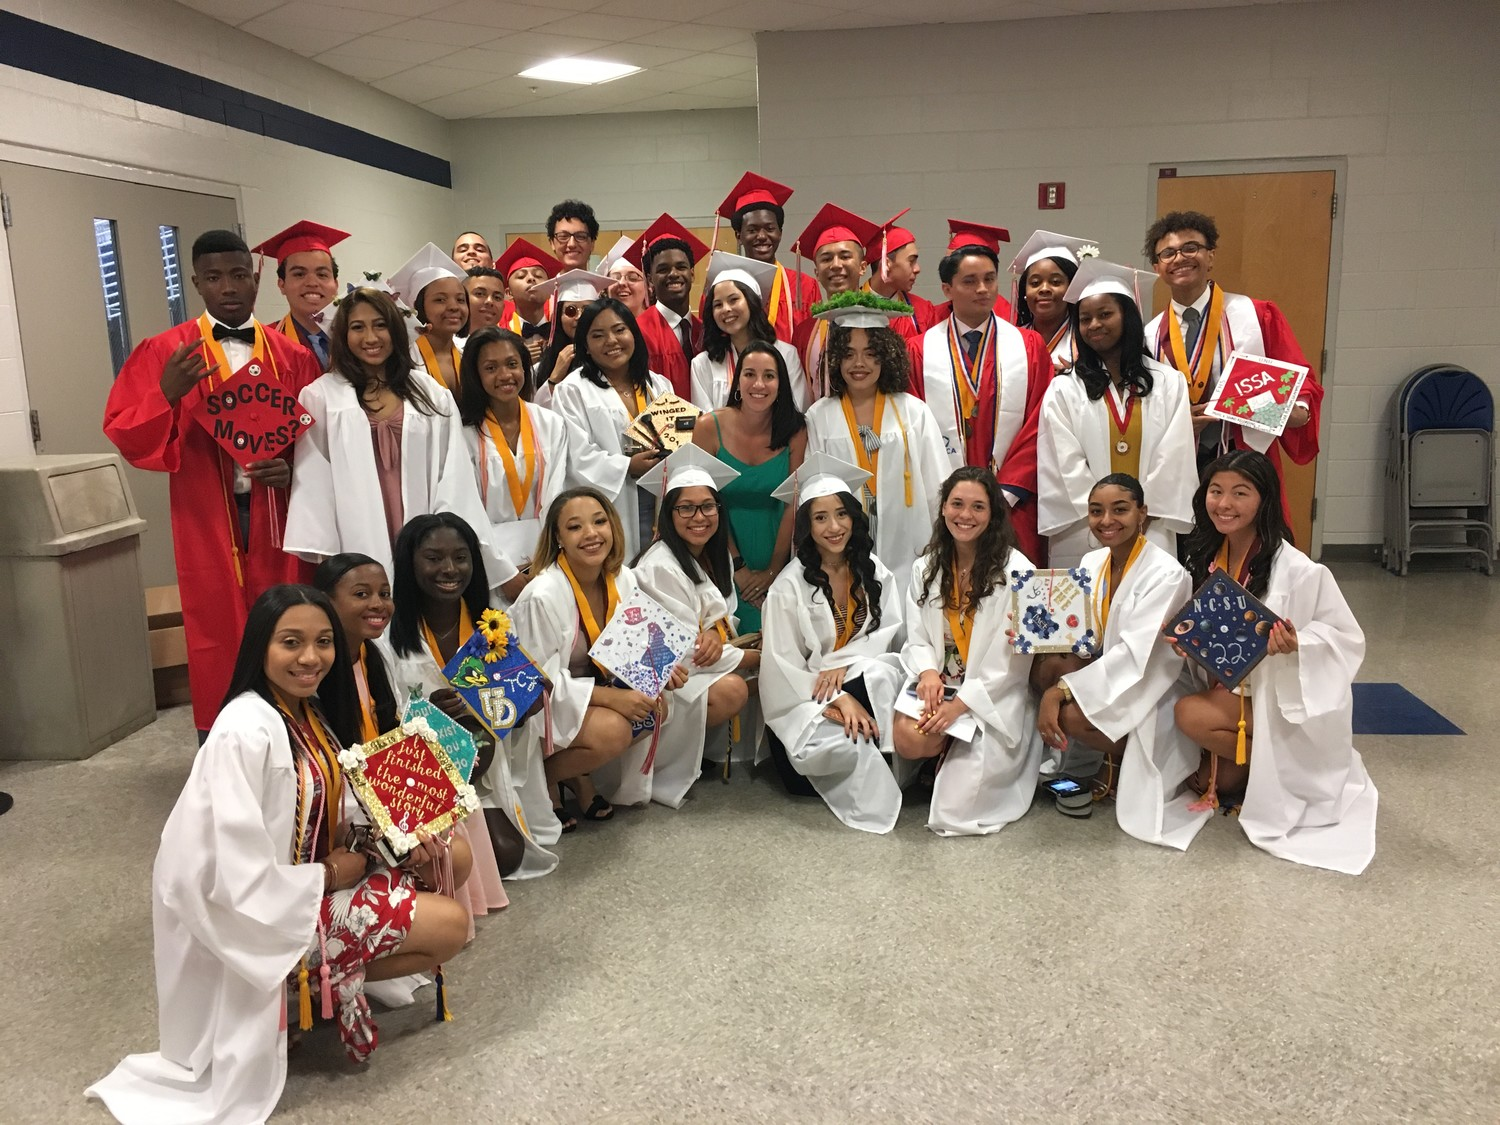 Freeport High School's Advanced Placement U.S. government class gathered with their teacher, Danielle Nally, center, before the ceremony.